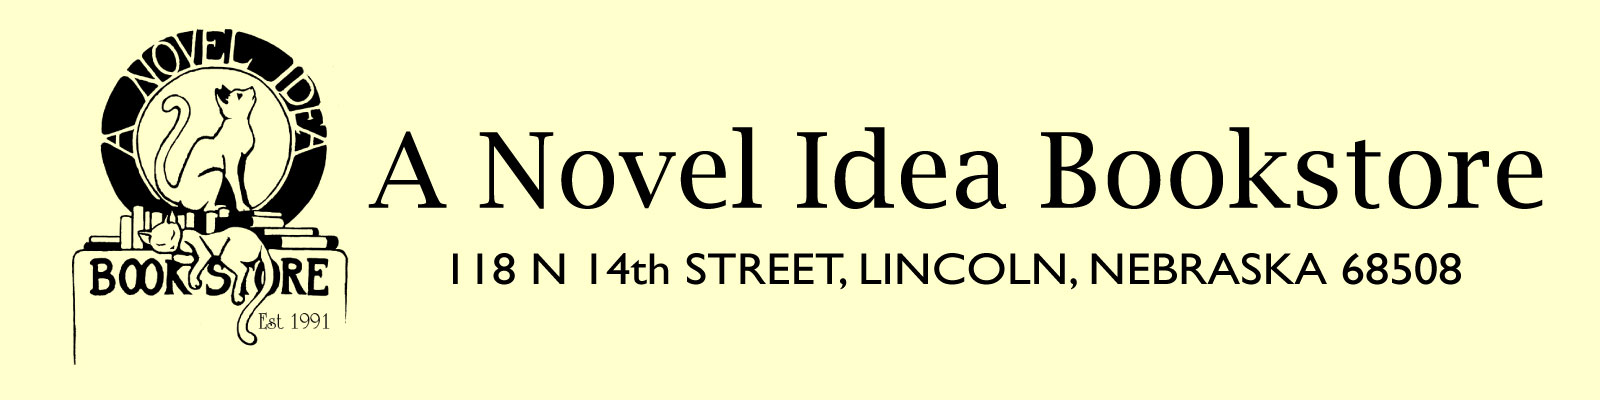 A Novel Idea Bookstore Logo